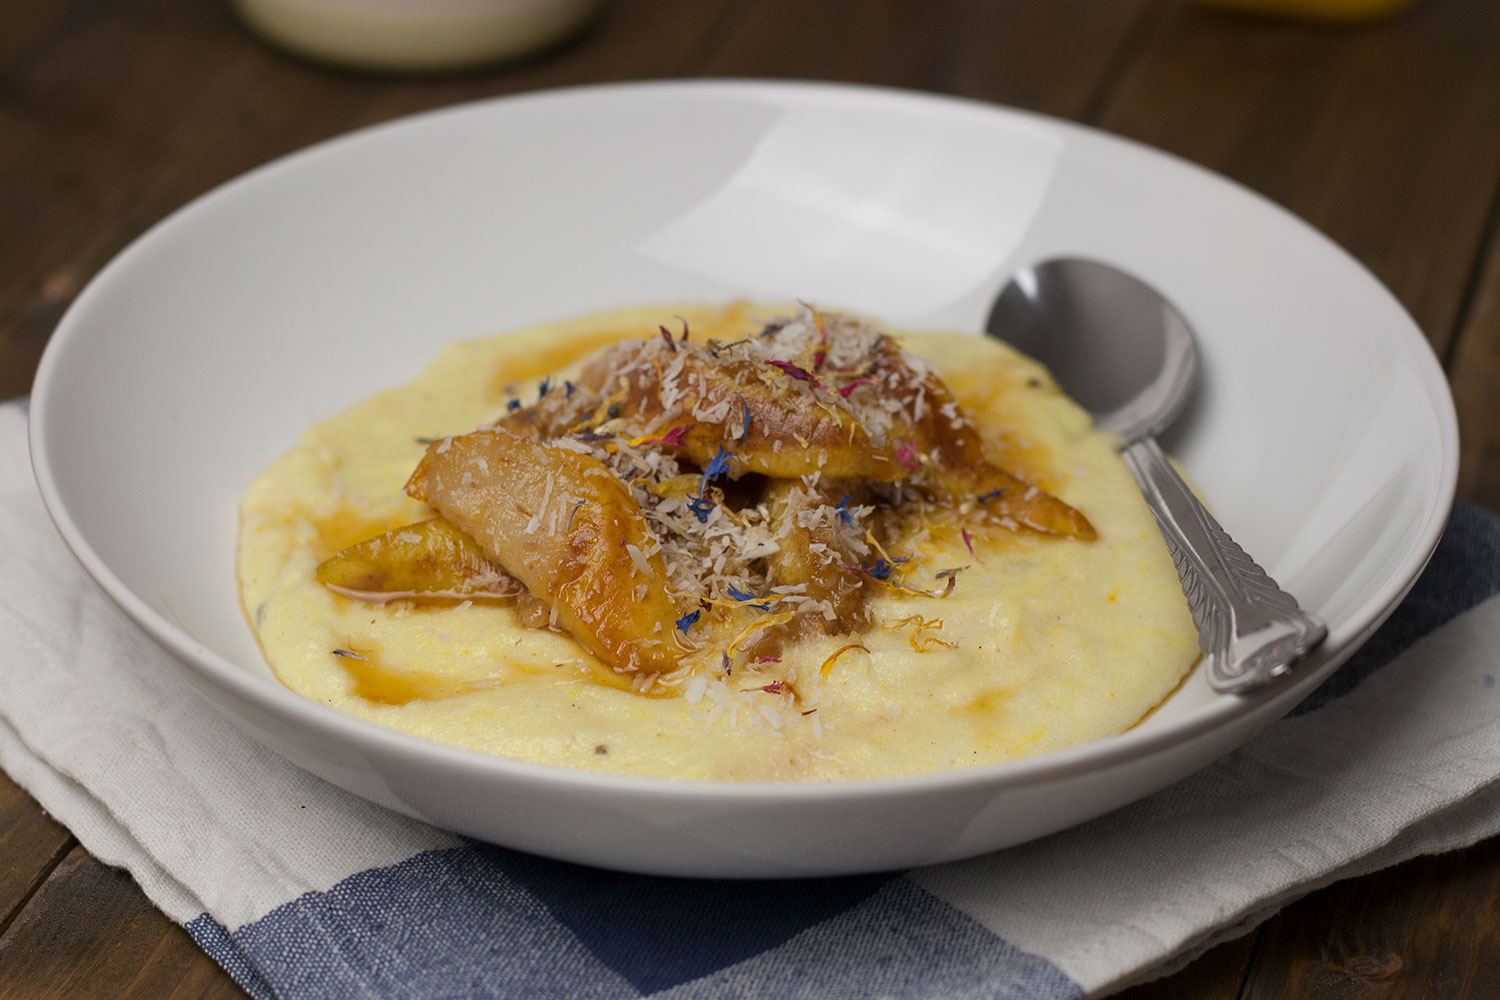 Kokos Grießbrei mit karamelisierter Birne | coconut semolina pudding with caramelized pear